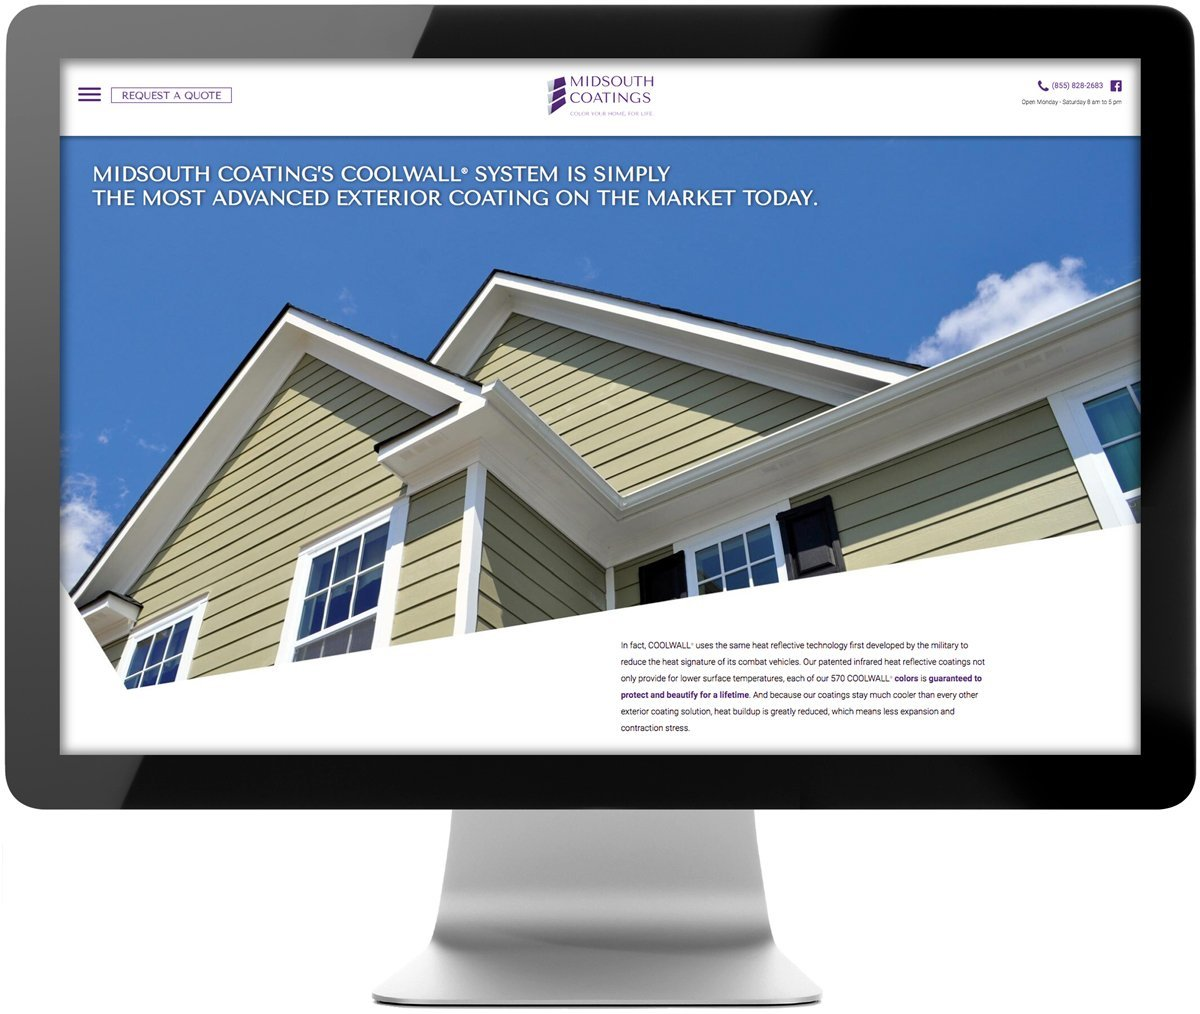 Website for MidSouth Coatings, designed and programmed by Cerberus Agency.